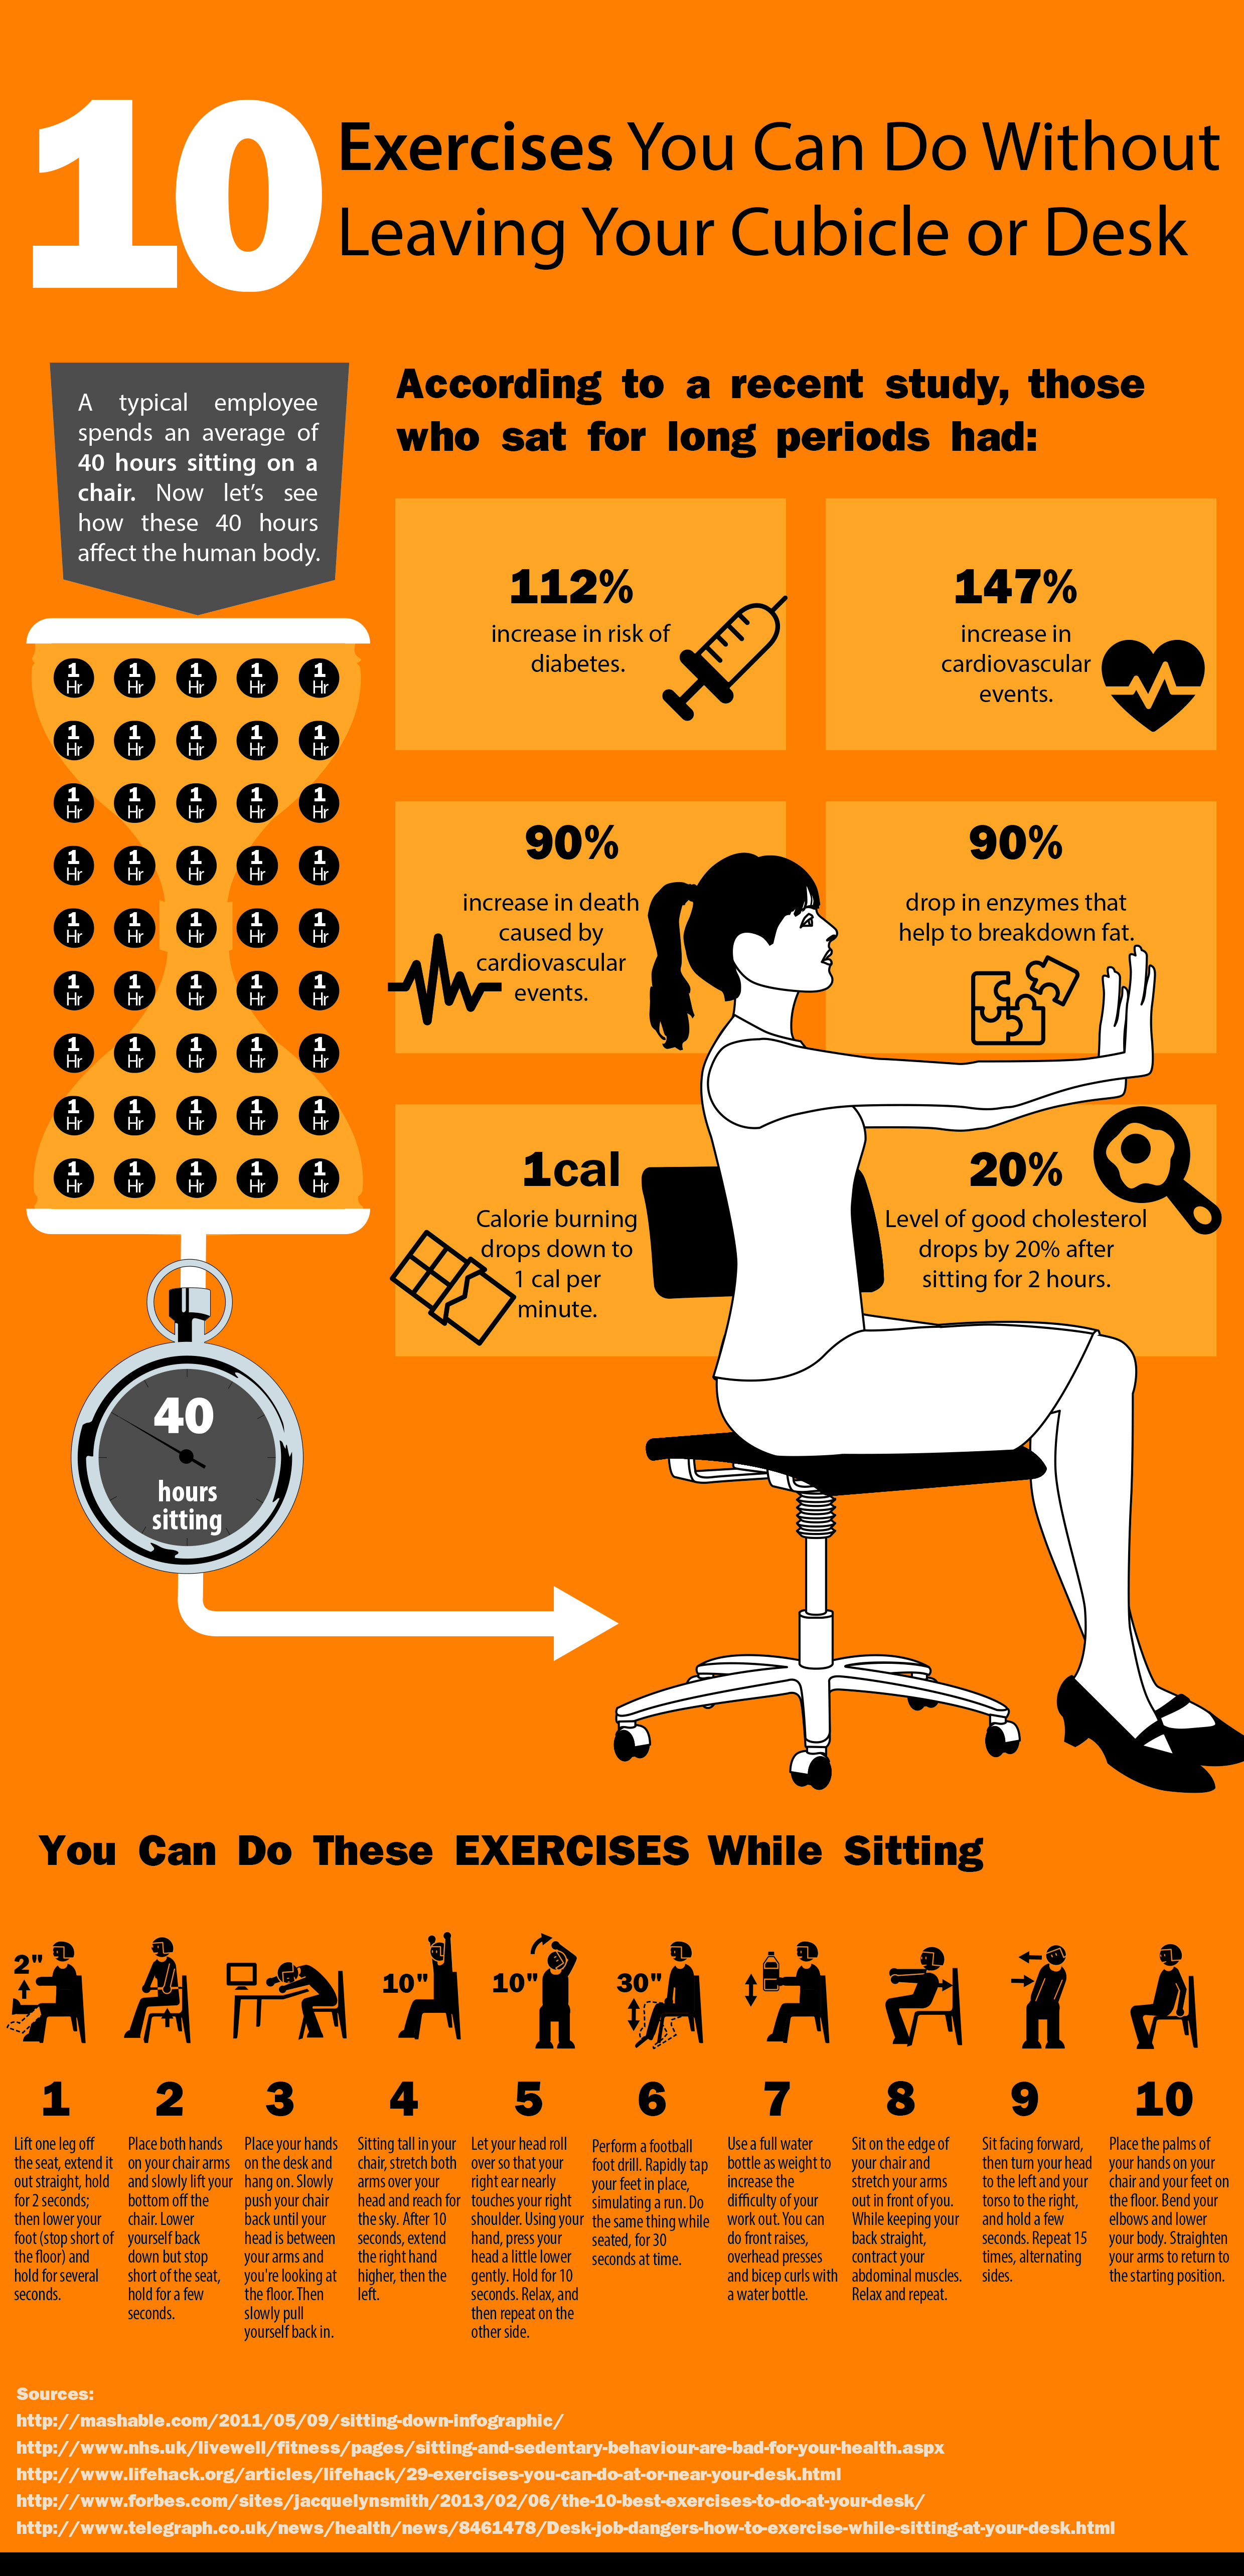 office chair without arms charles eames 10 exercises you can do at your cubicle or desk - yeg fitness